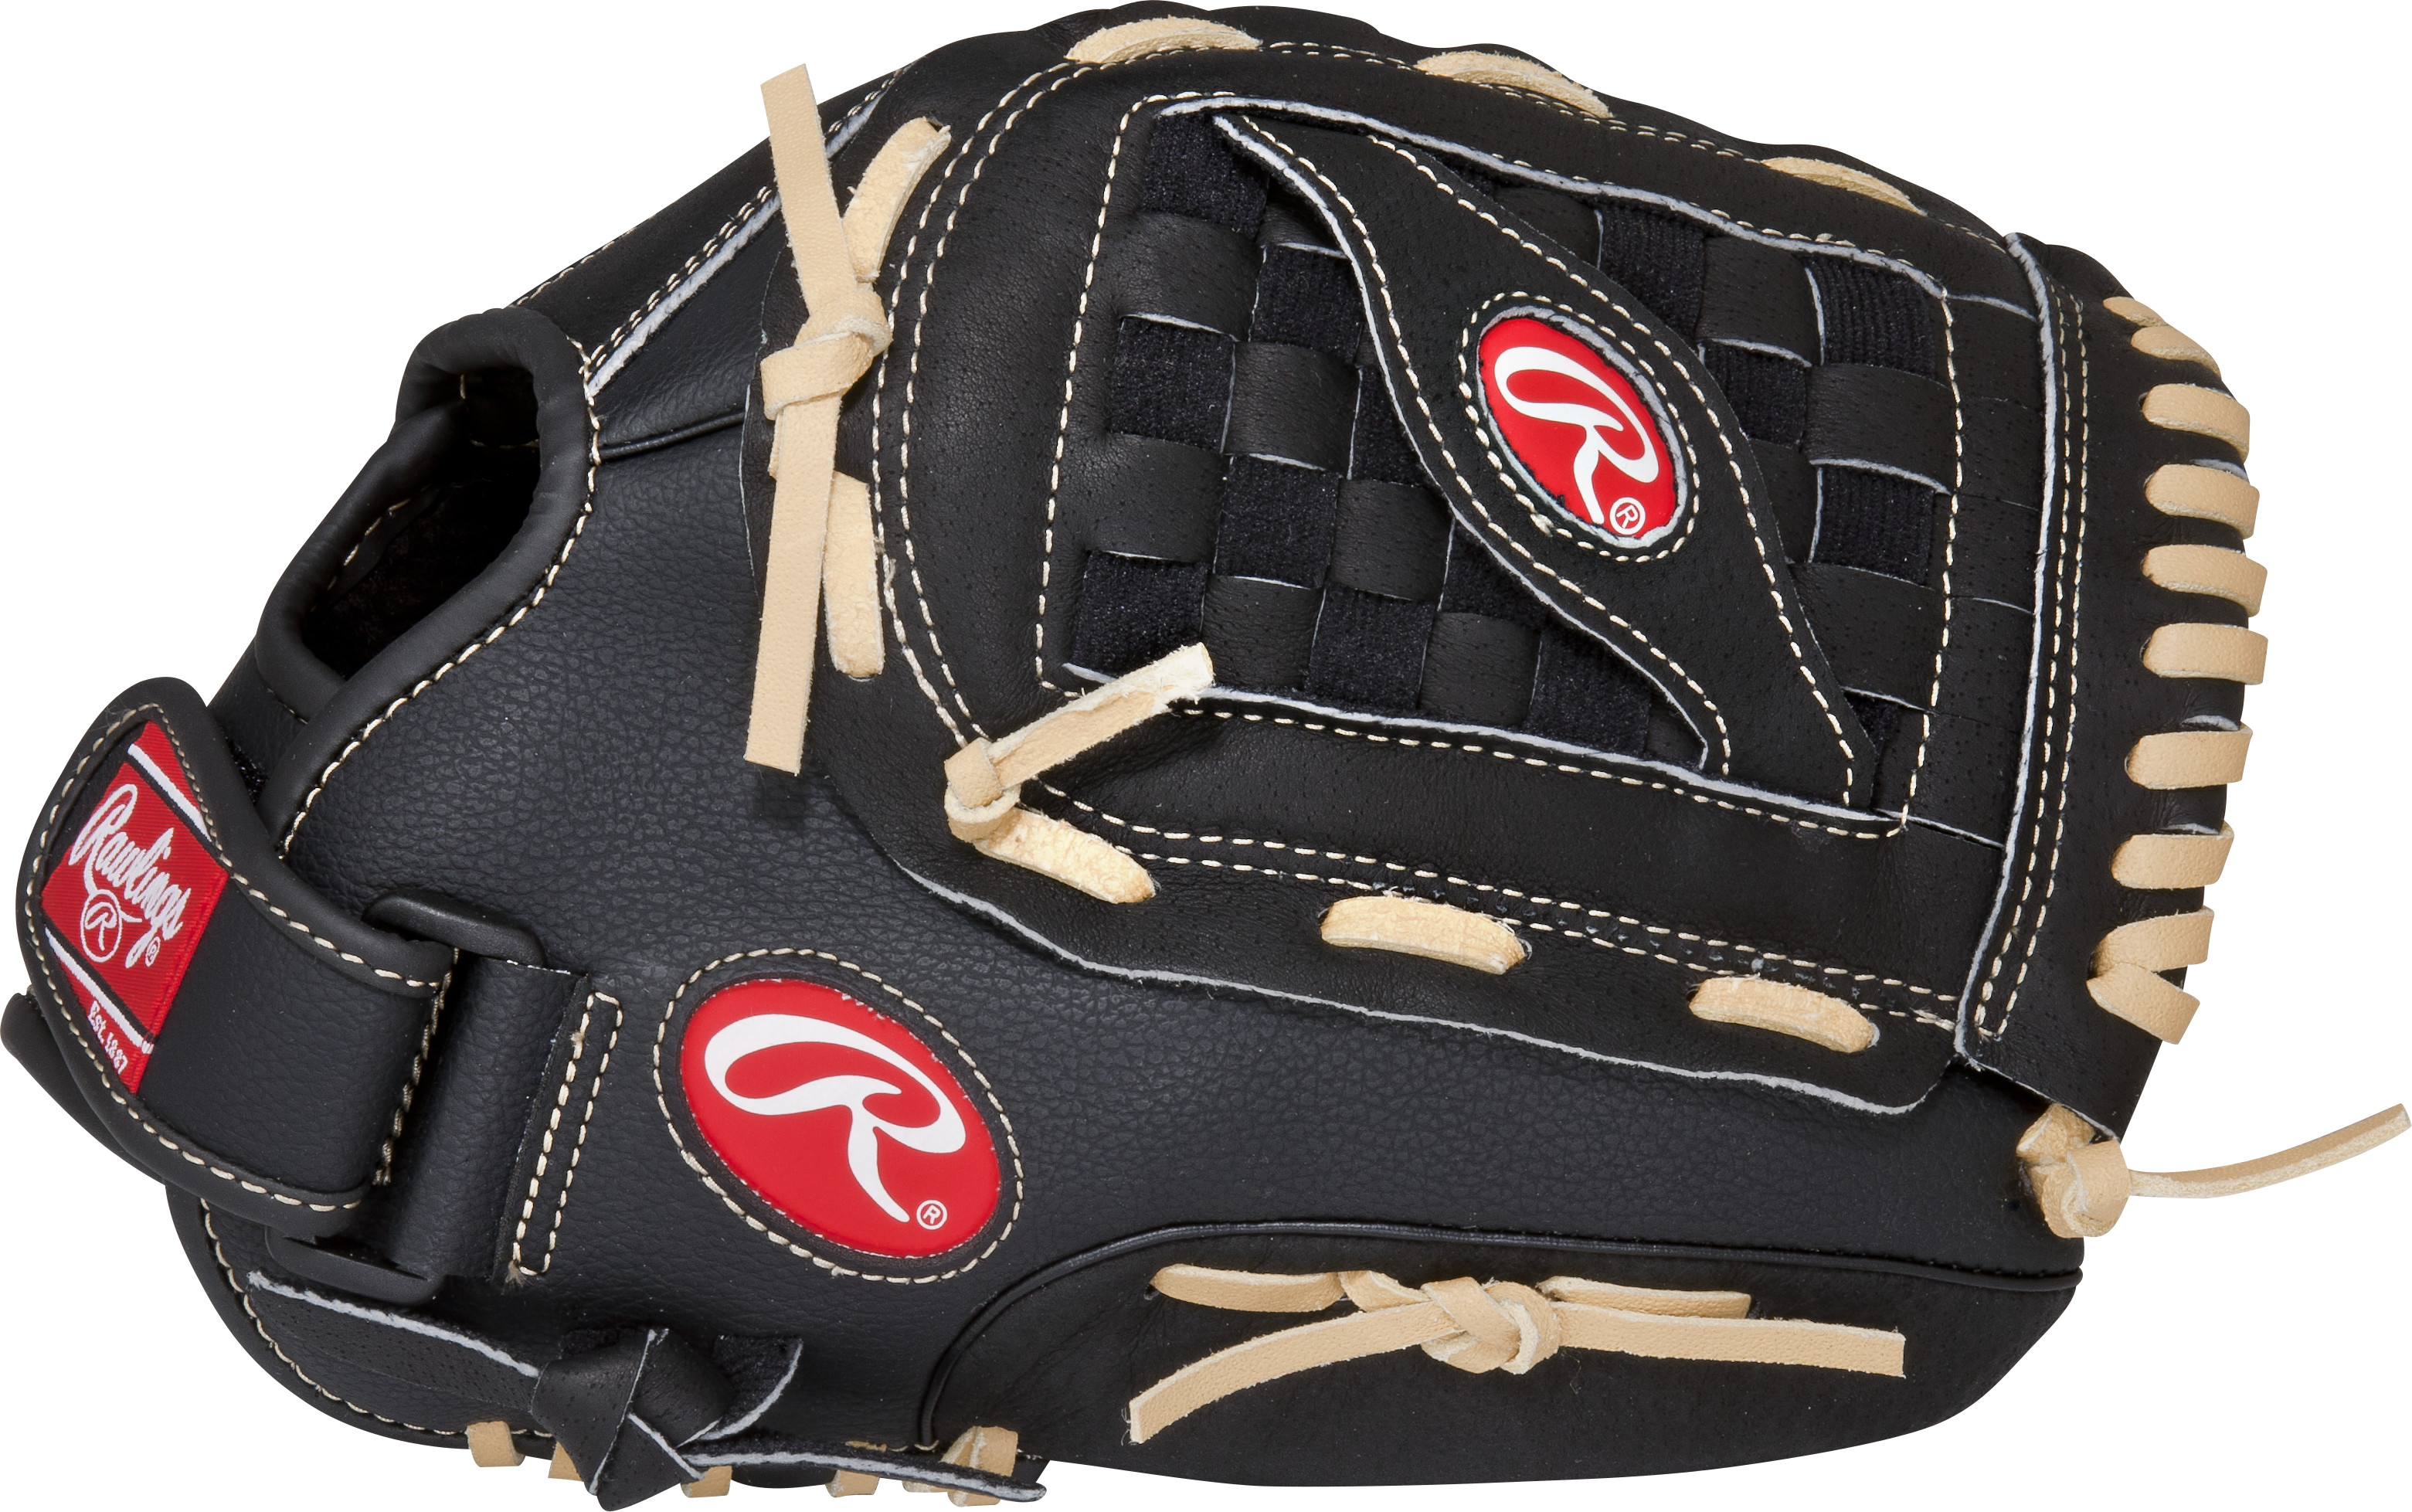 Rawlings RSB Series Softball Glove by Rawlings